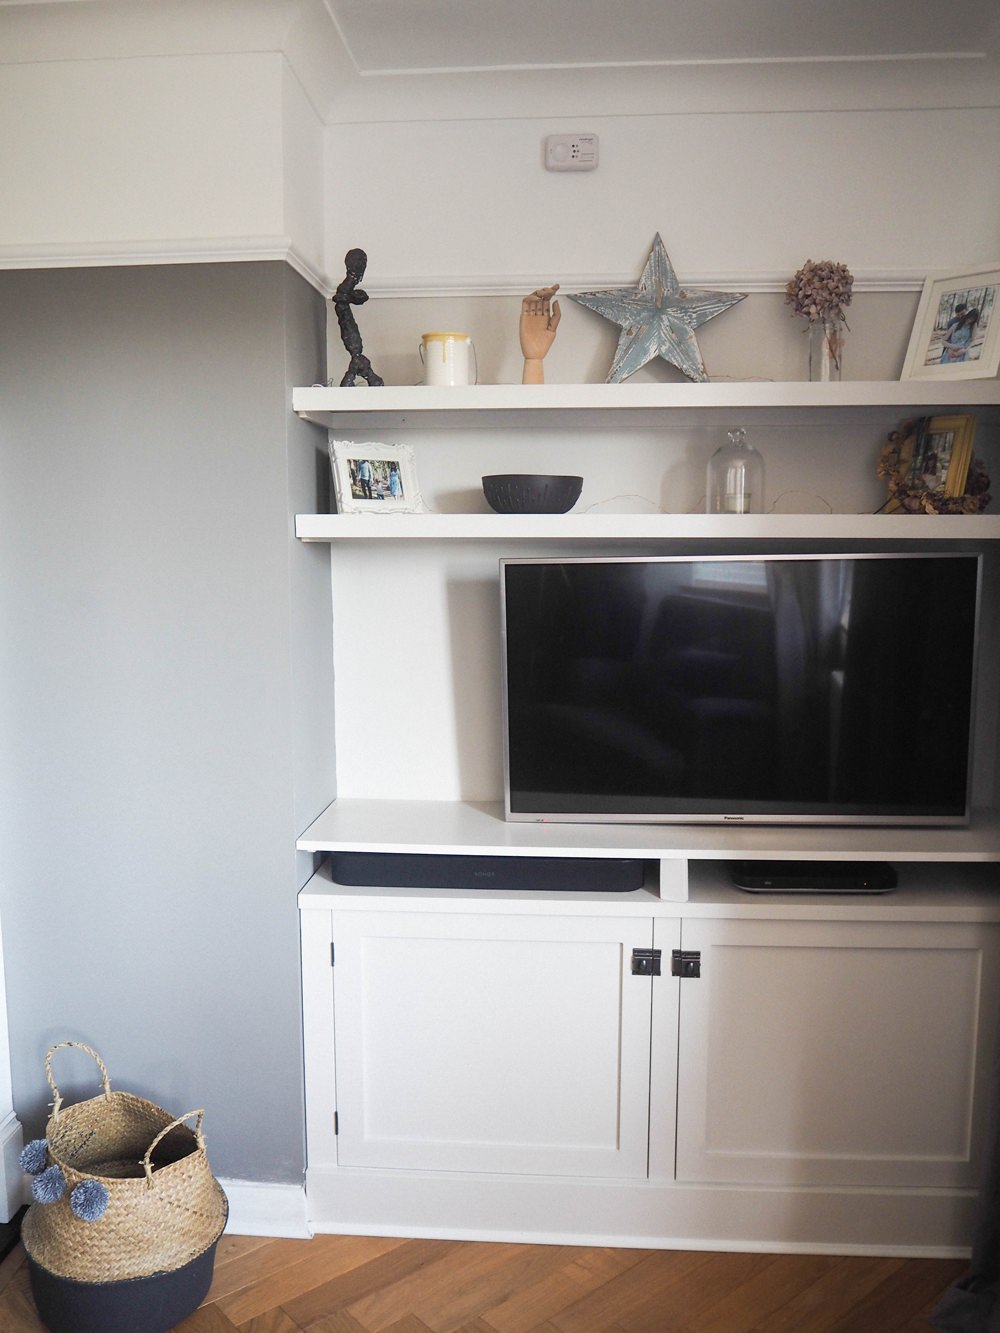 Built In TV Cupboard Alcove Shelf Shelving DIY 1930s House Living Room Renovation